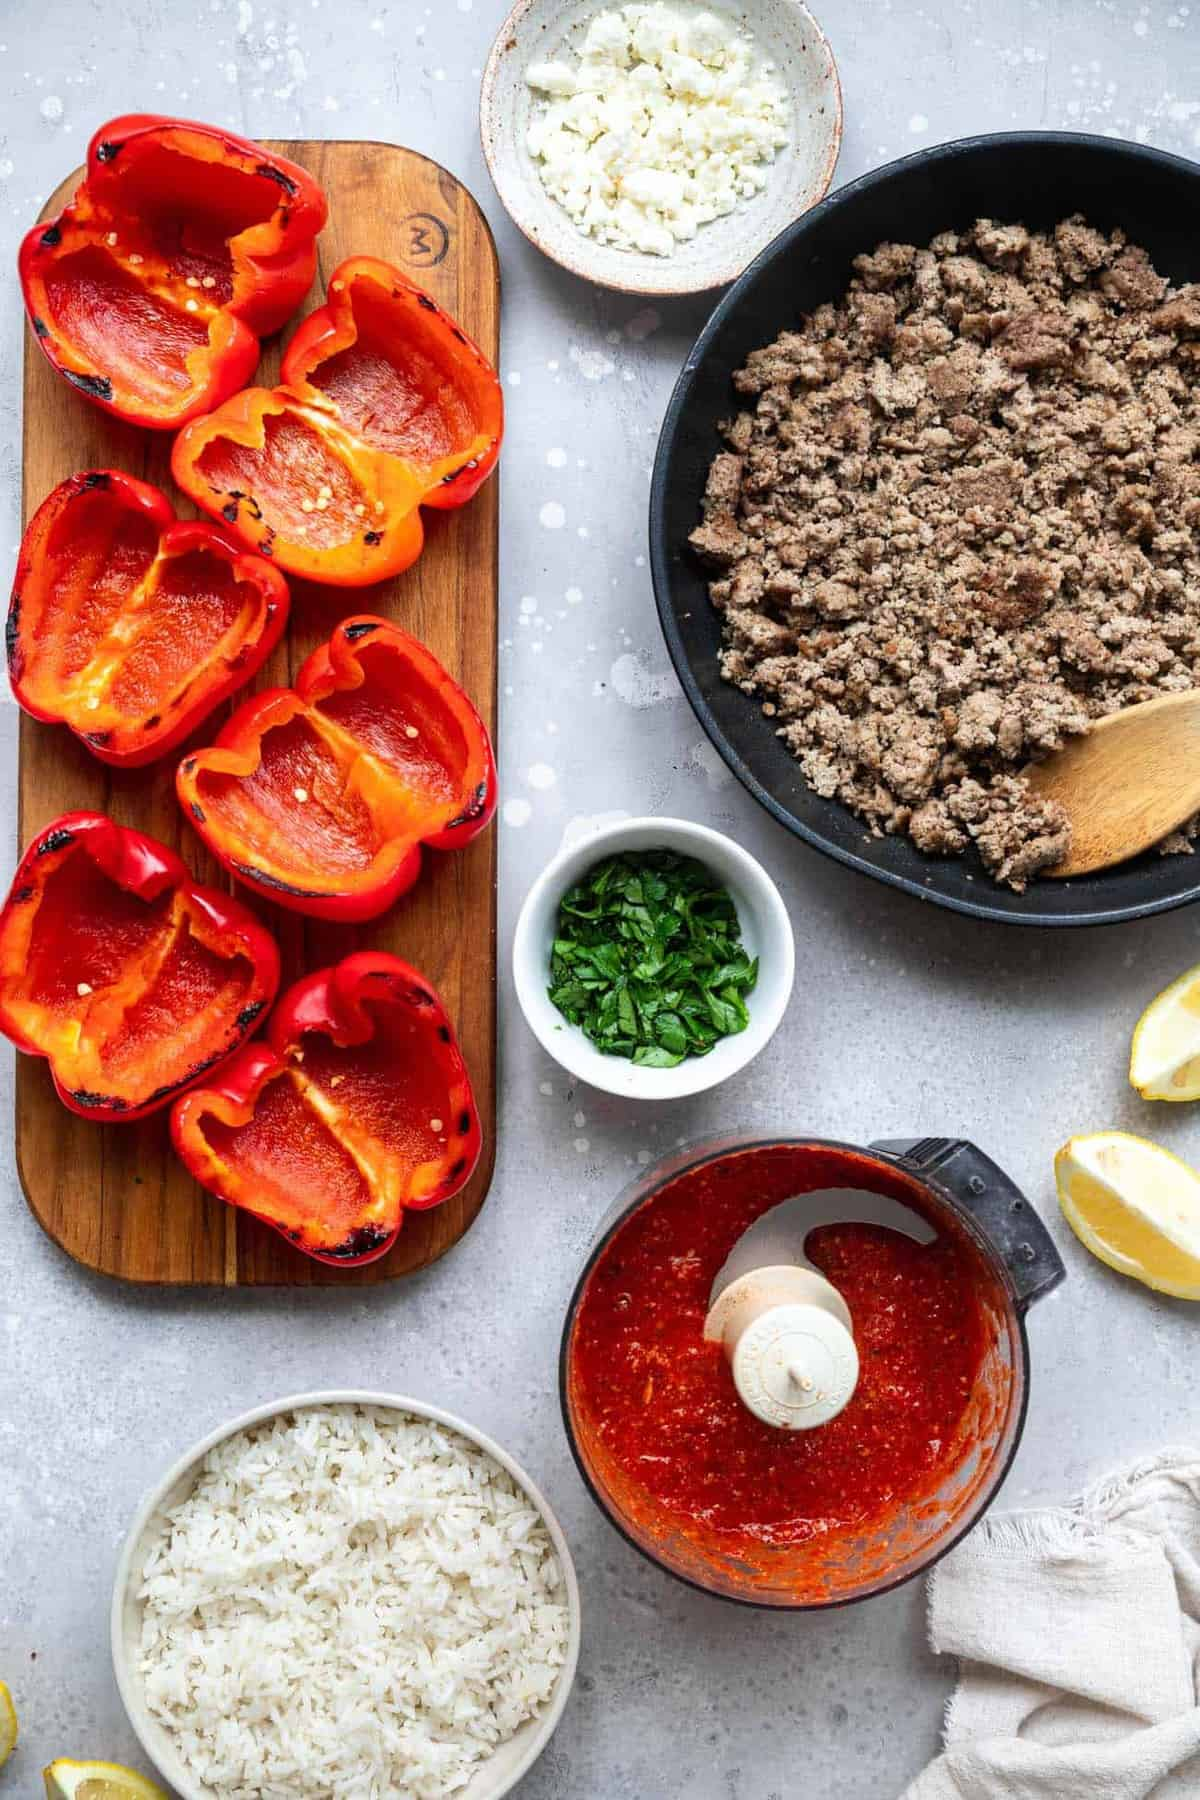 ingredients to make grilled stuffed bell peppers on a table